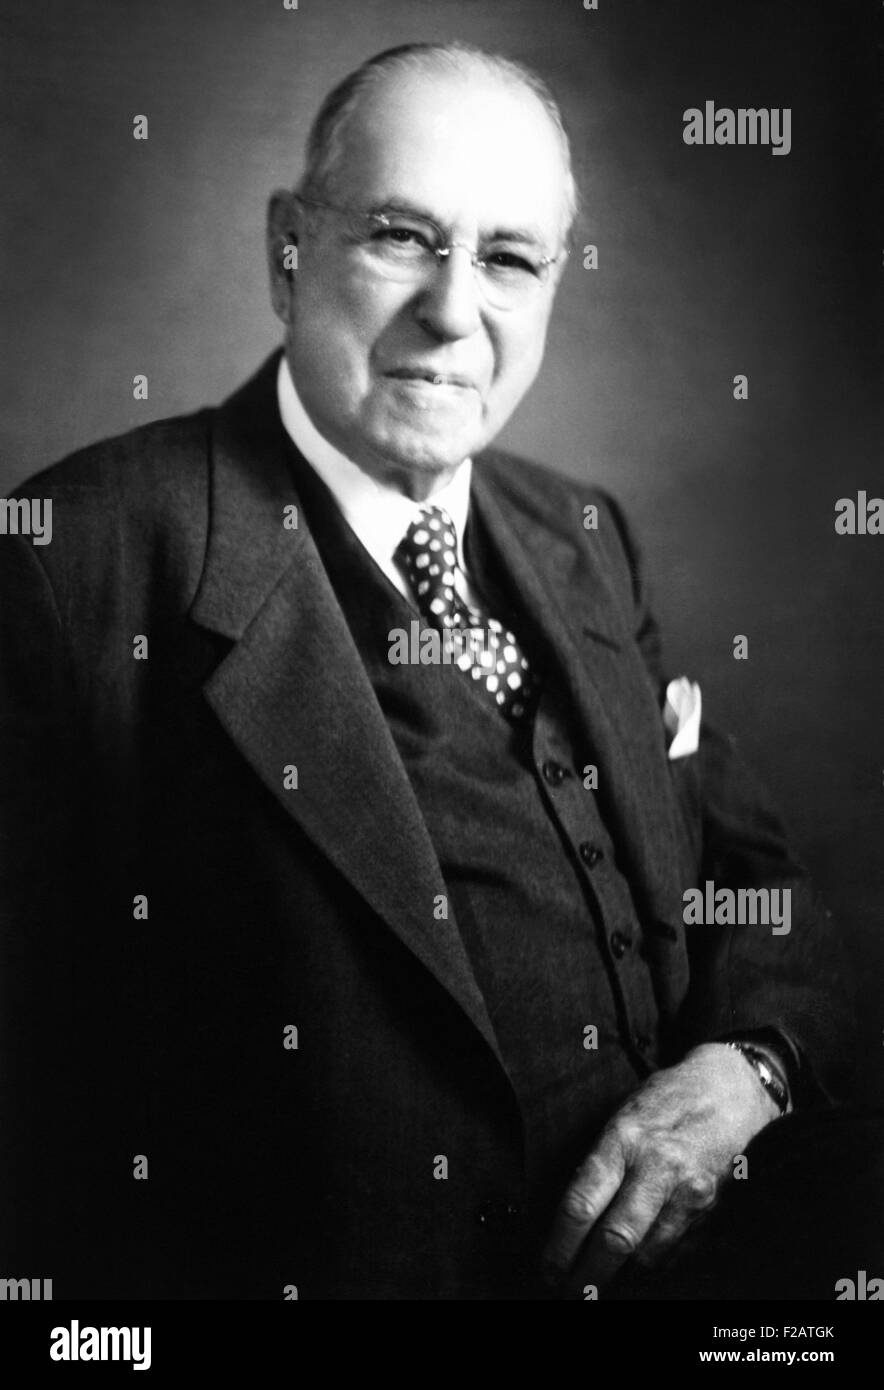 Dr. Charles Frederick Menninger. Founder of the Menninger Clinic in Topeka Kansas. Ca. 1935. He was the father of - Stock Image